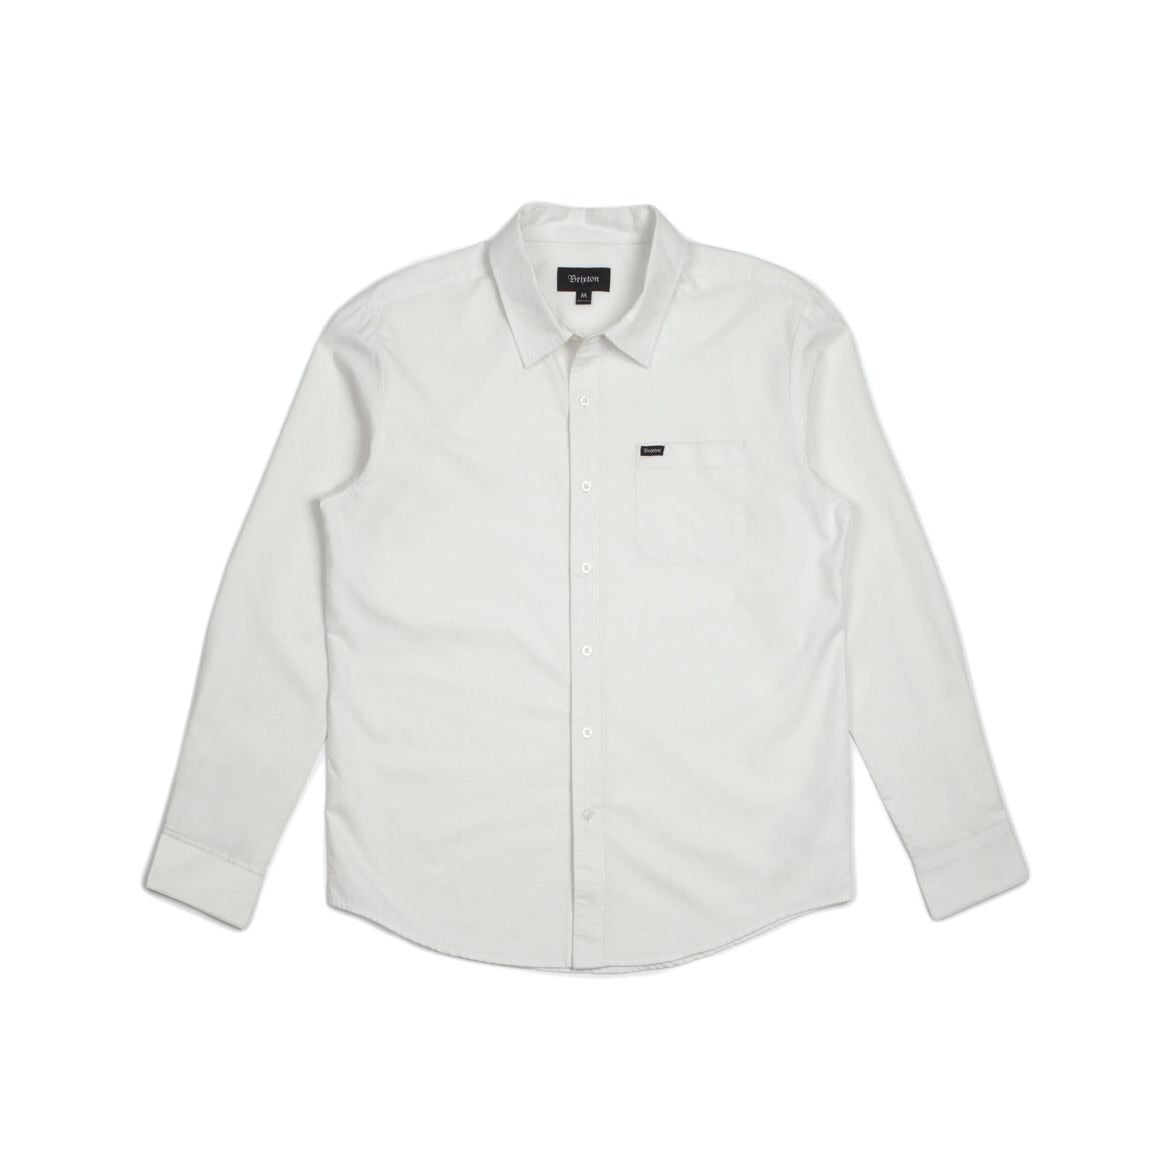 Charter Oxford Off White